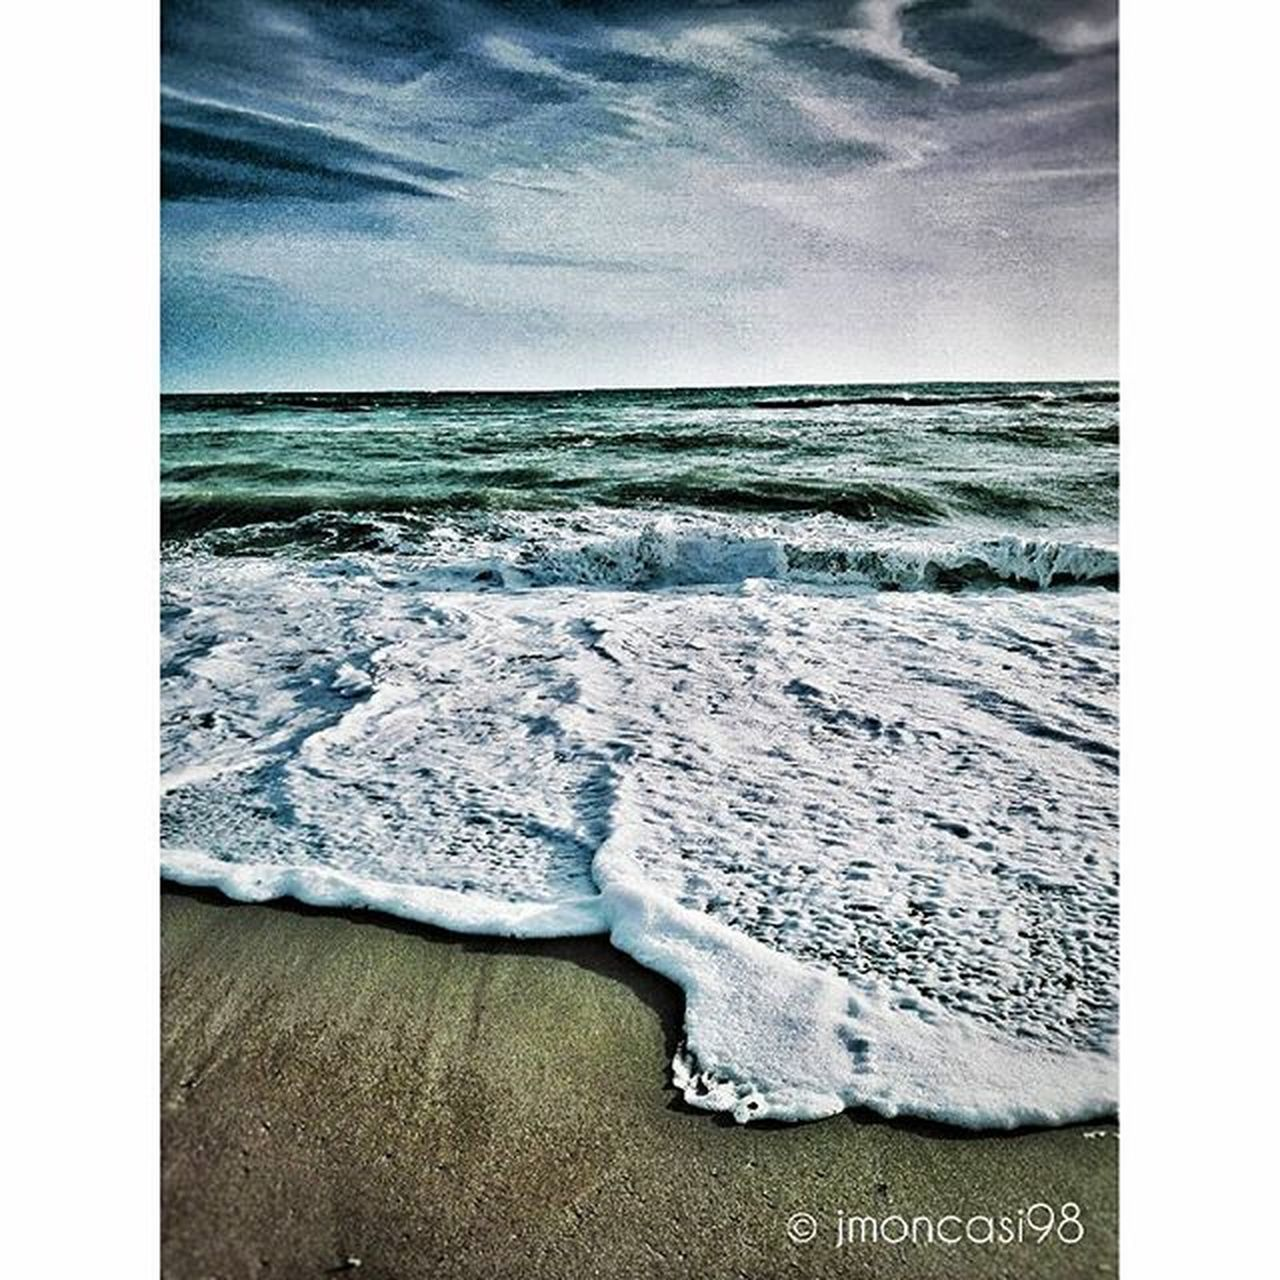 Playa de Balanegra🌅🌊 Sony HX 300 📷 - Jordi Moncasi Photo Photooftheday Photography Playa Balanegra Berja Beach Mar Foton Sonyhx300 Sony Hx300 Jmphotography Cámara 20mpx Andalucía Granada Berja Playadebalanegra Summer Summer2015 Summertime Indtaphoto Instamoment Tumblur